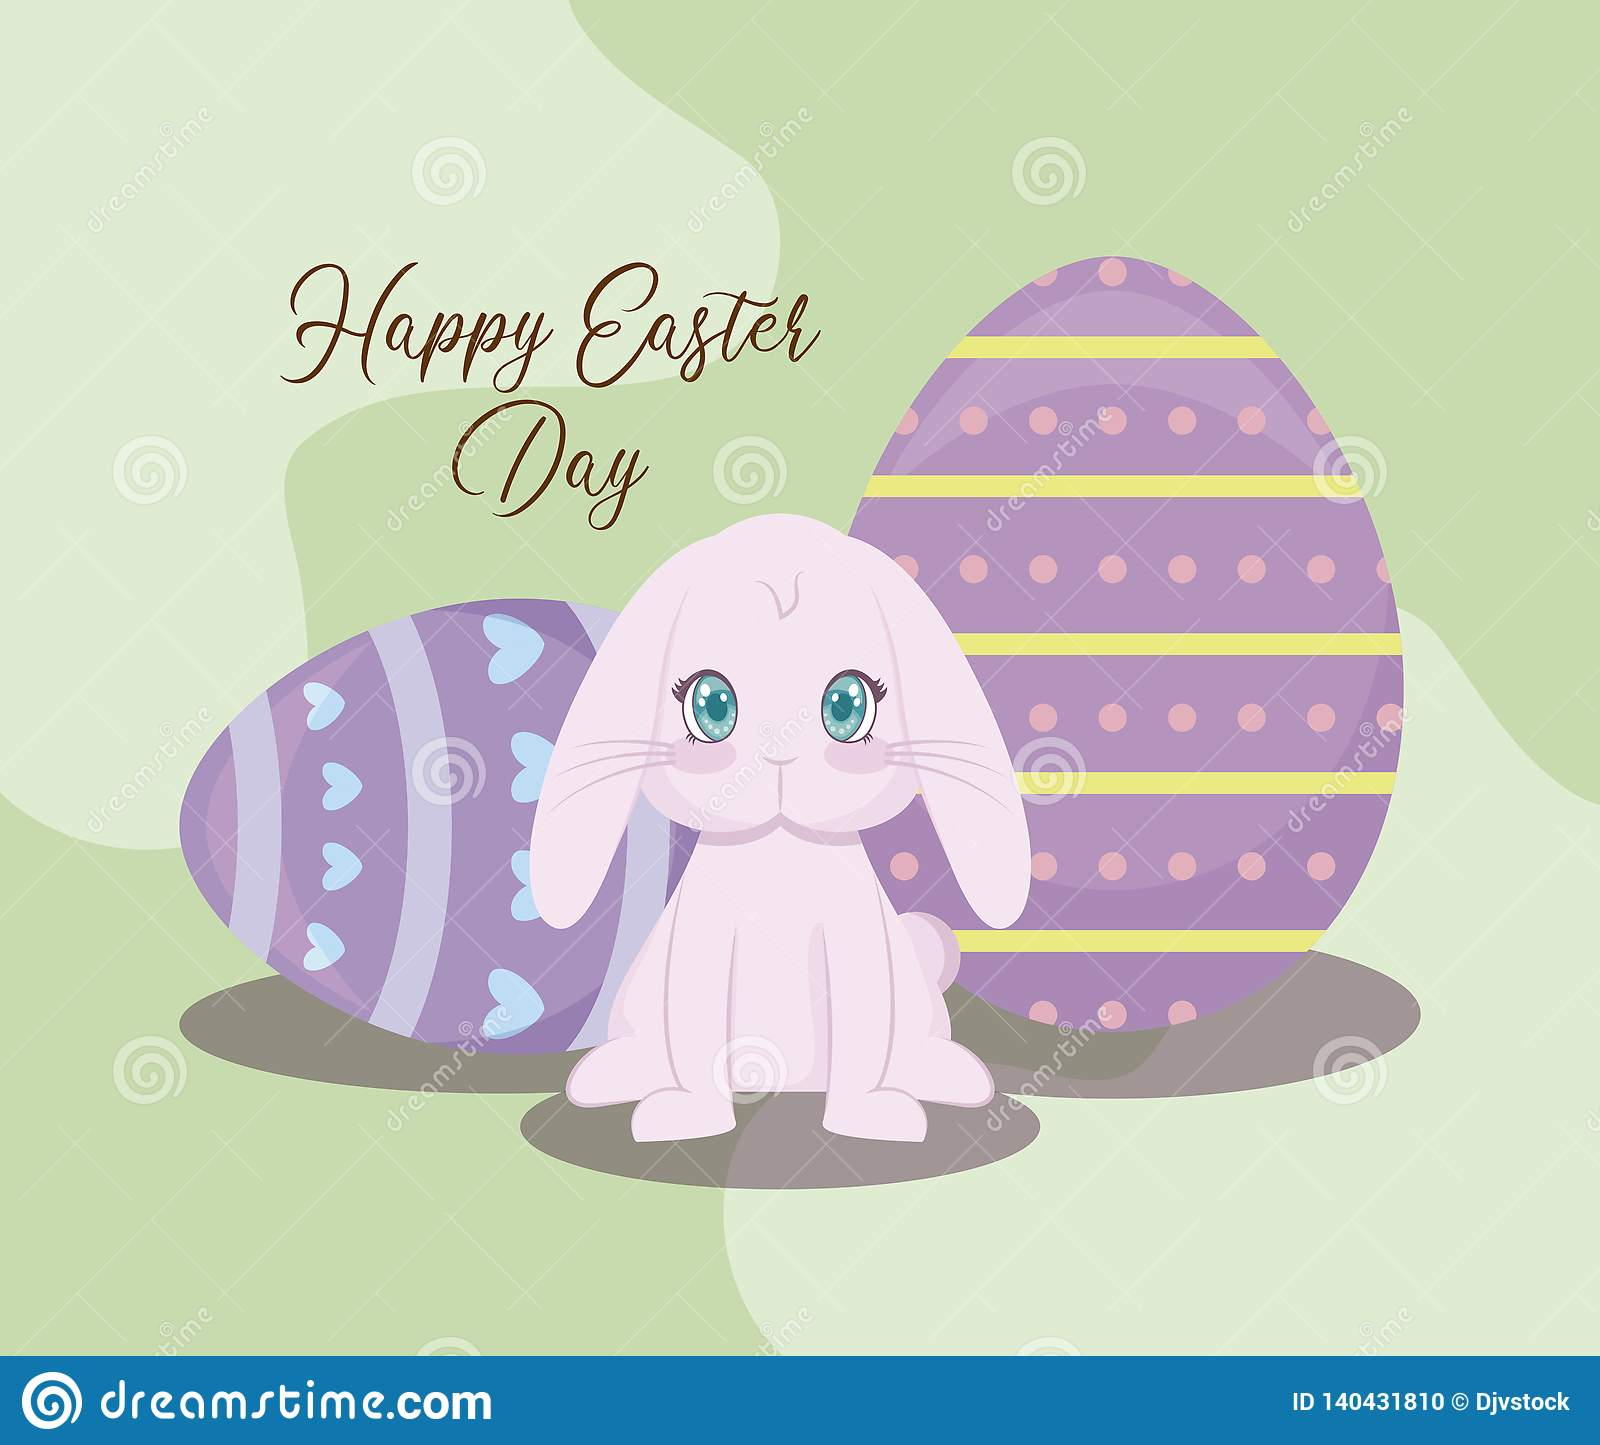 Happy Easter Day Card With Cute Rabbit And Eggs Stock Vector Illustration Of Greeting Event 140431810